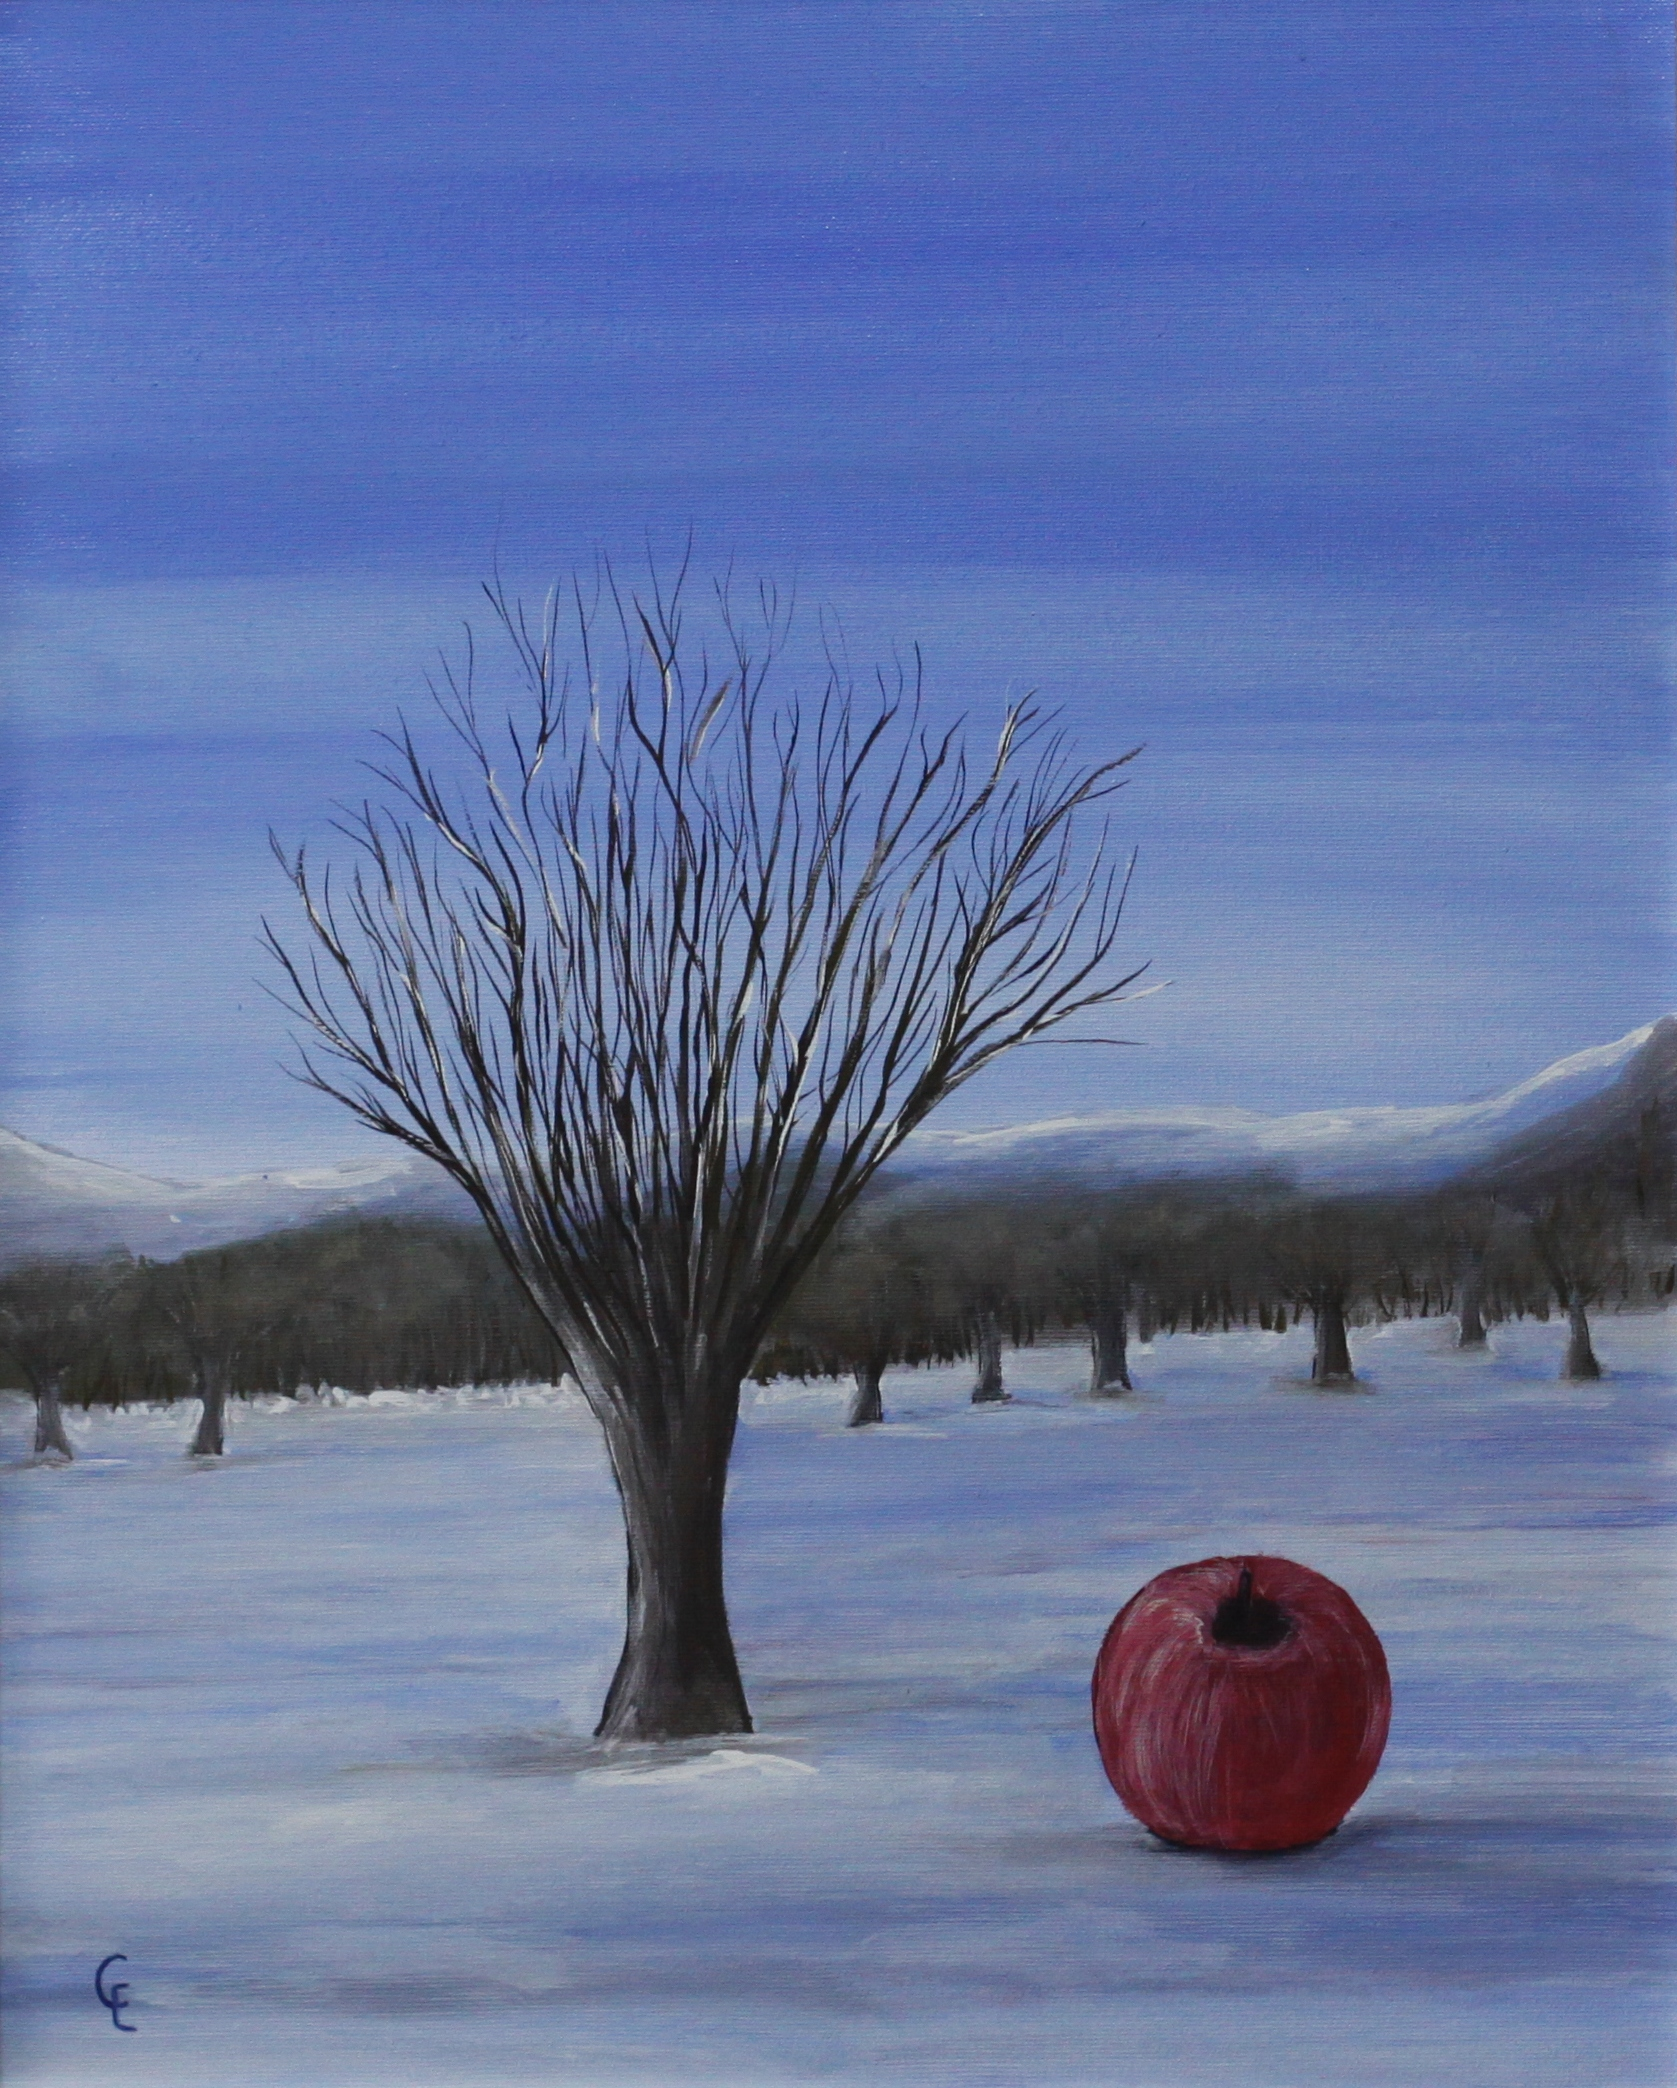 Winter landscape with apple